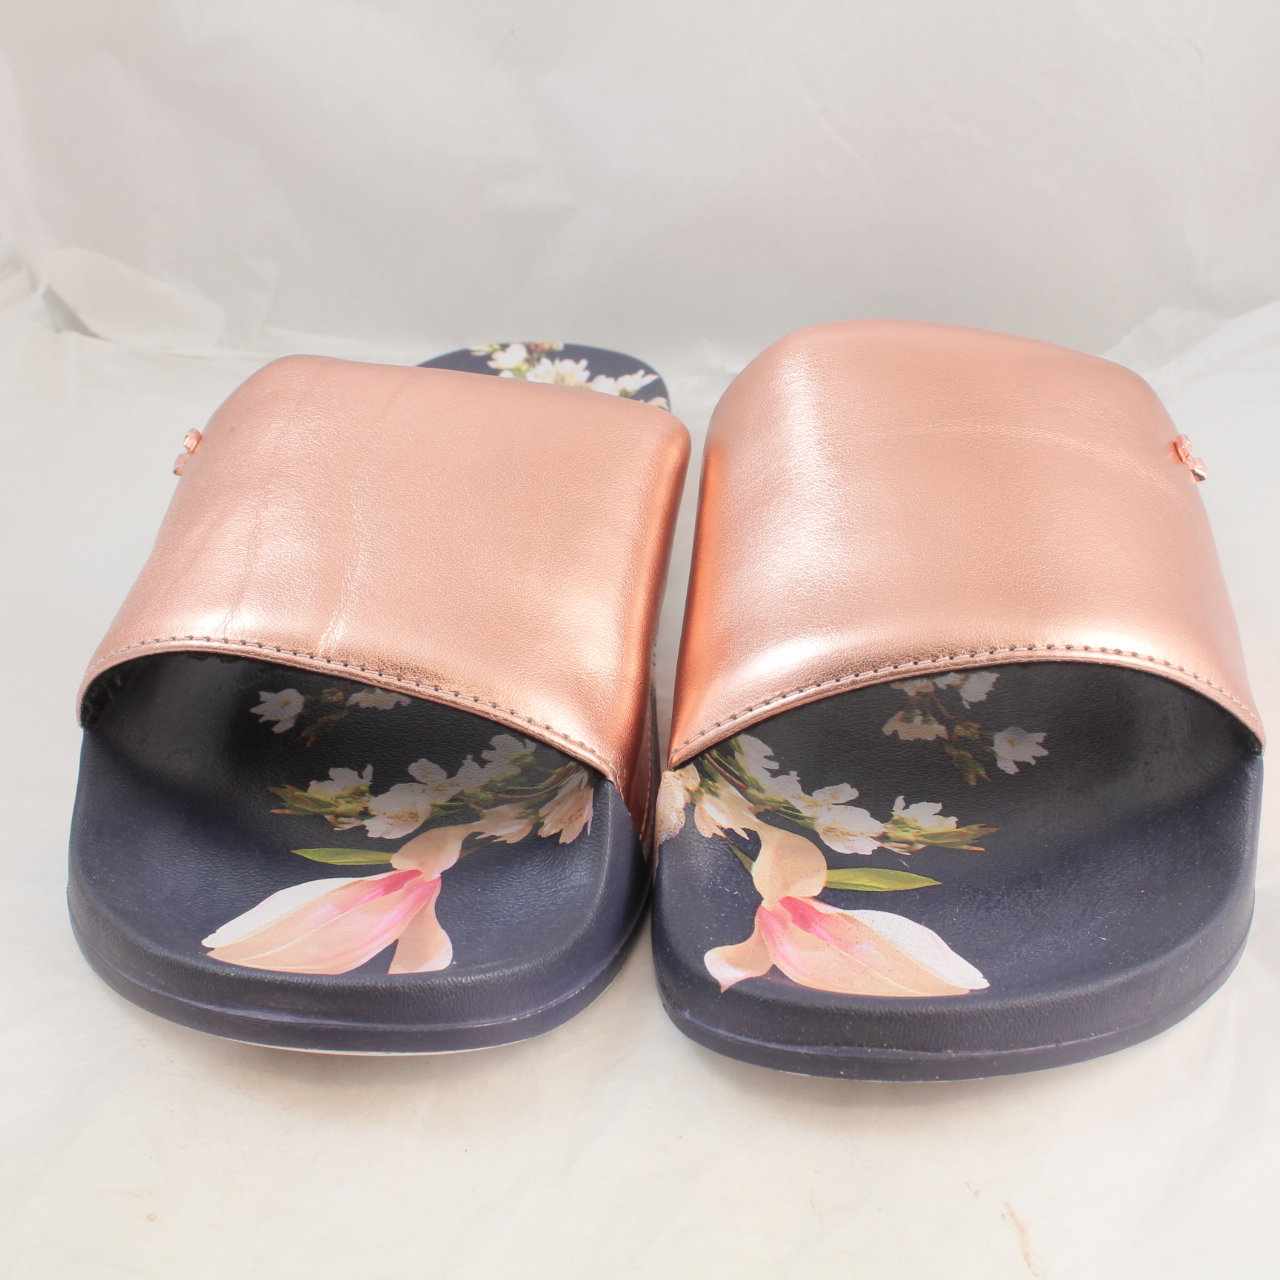 20eda9581 Sentinel Womens Ted Baker Navy Blue Synthetic Slip On Sandals Size UK 6  Ex- Display. Sentinel Thumbnail 3